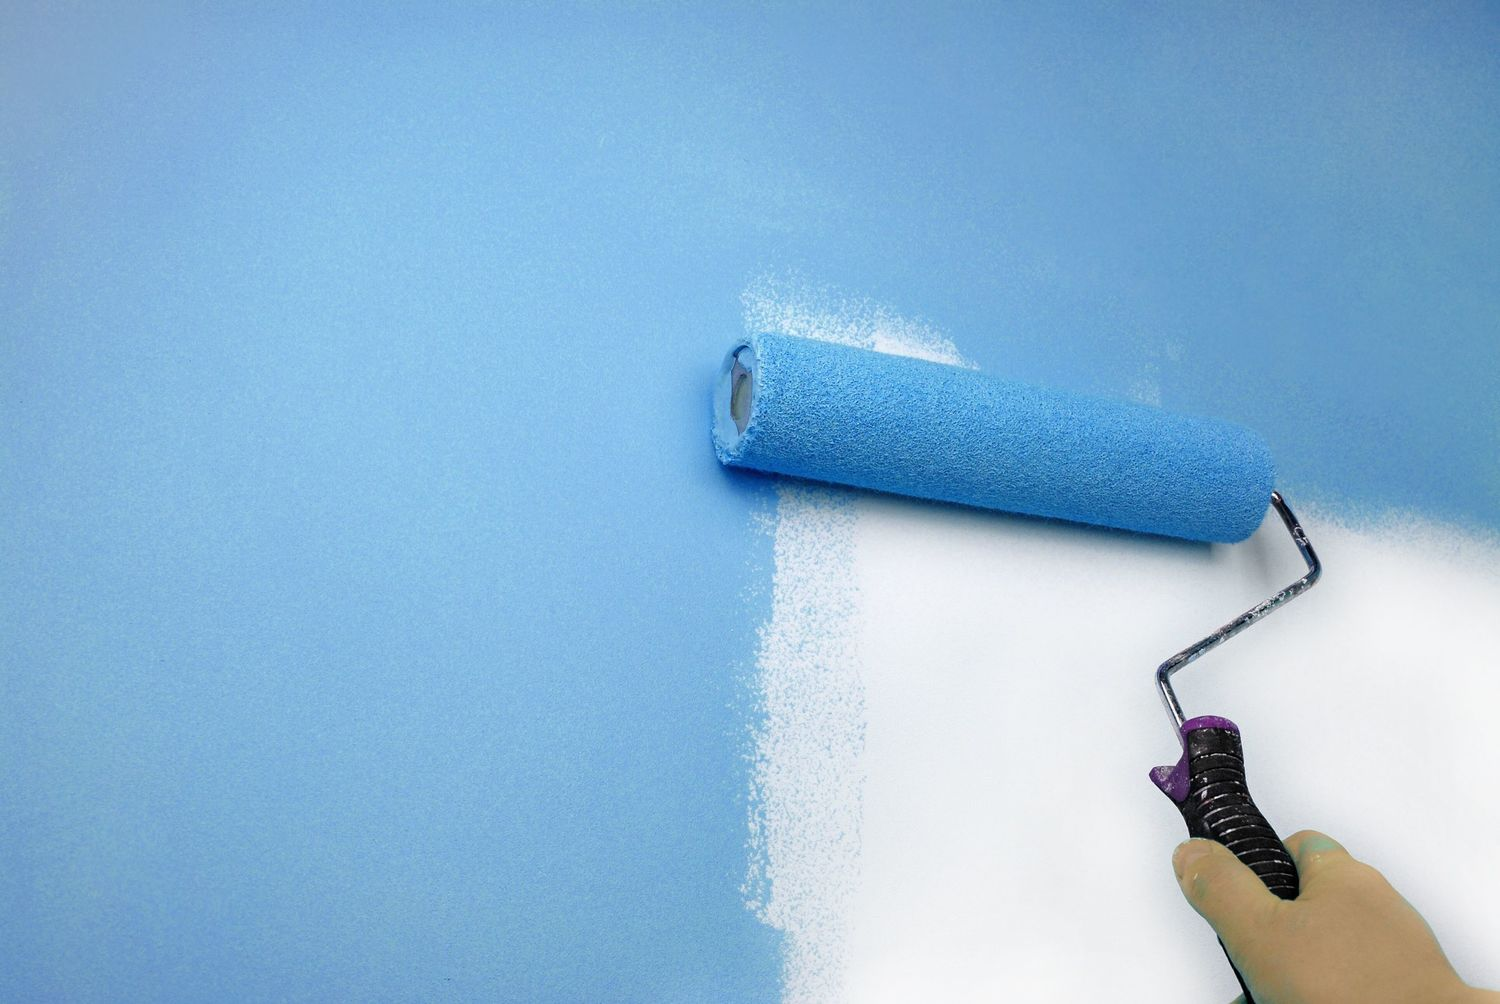 House Painting Tips interior house painting tips for the perfect paint job — elite